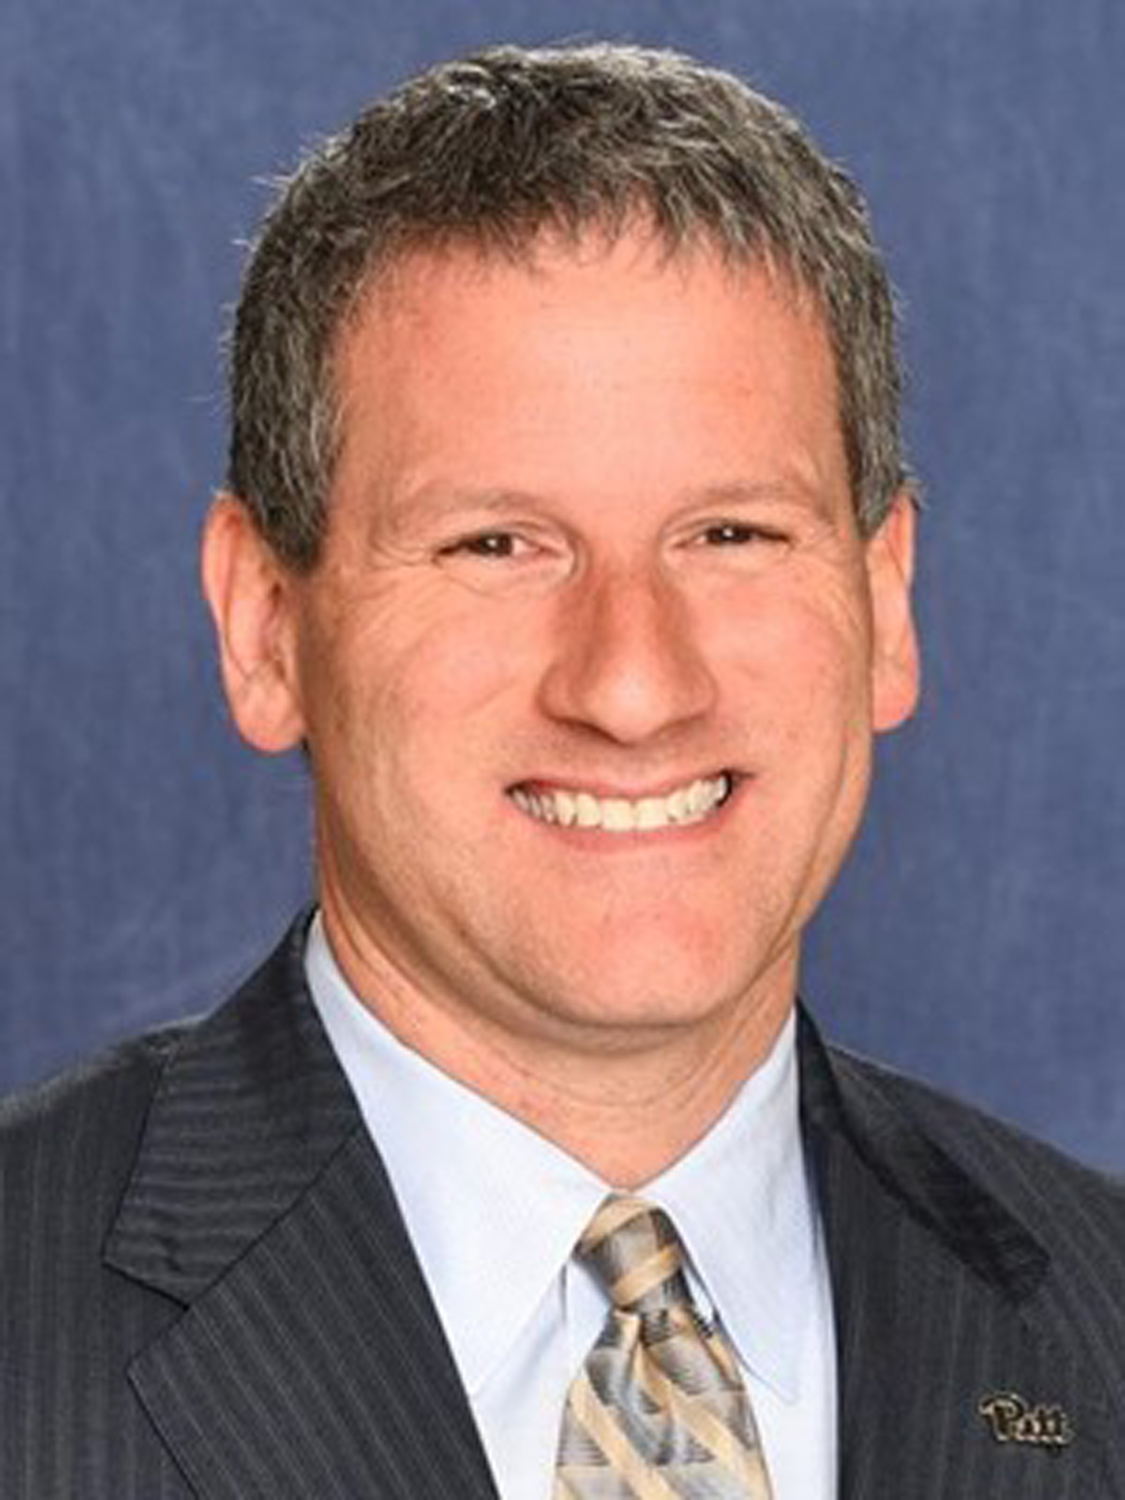 E.J. Borghetti is the executive associate athletic director of media relations for Pitt Athletics, where he leads media operations for Pitt's 19 intercollegiate sports.